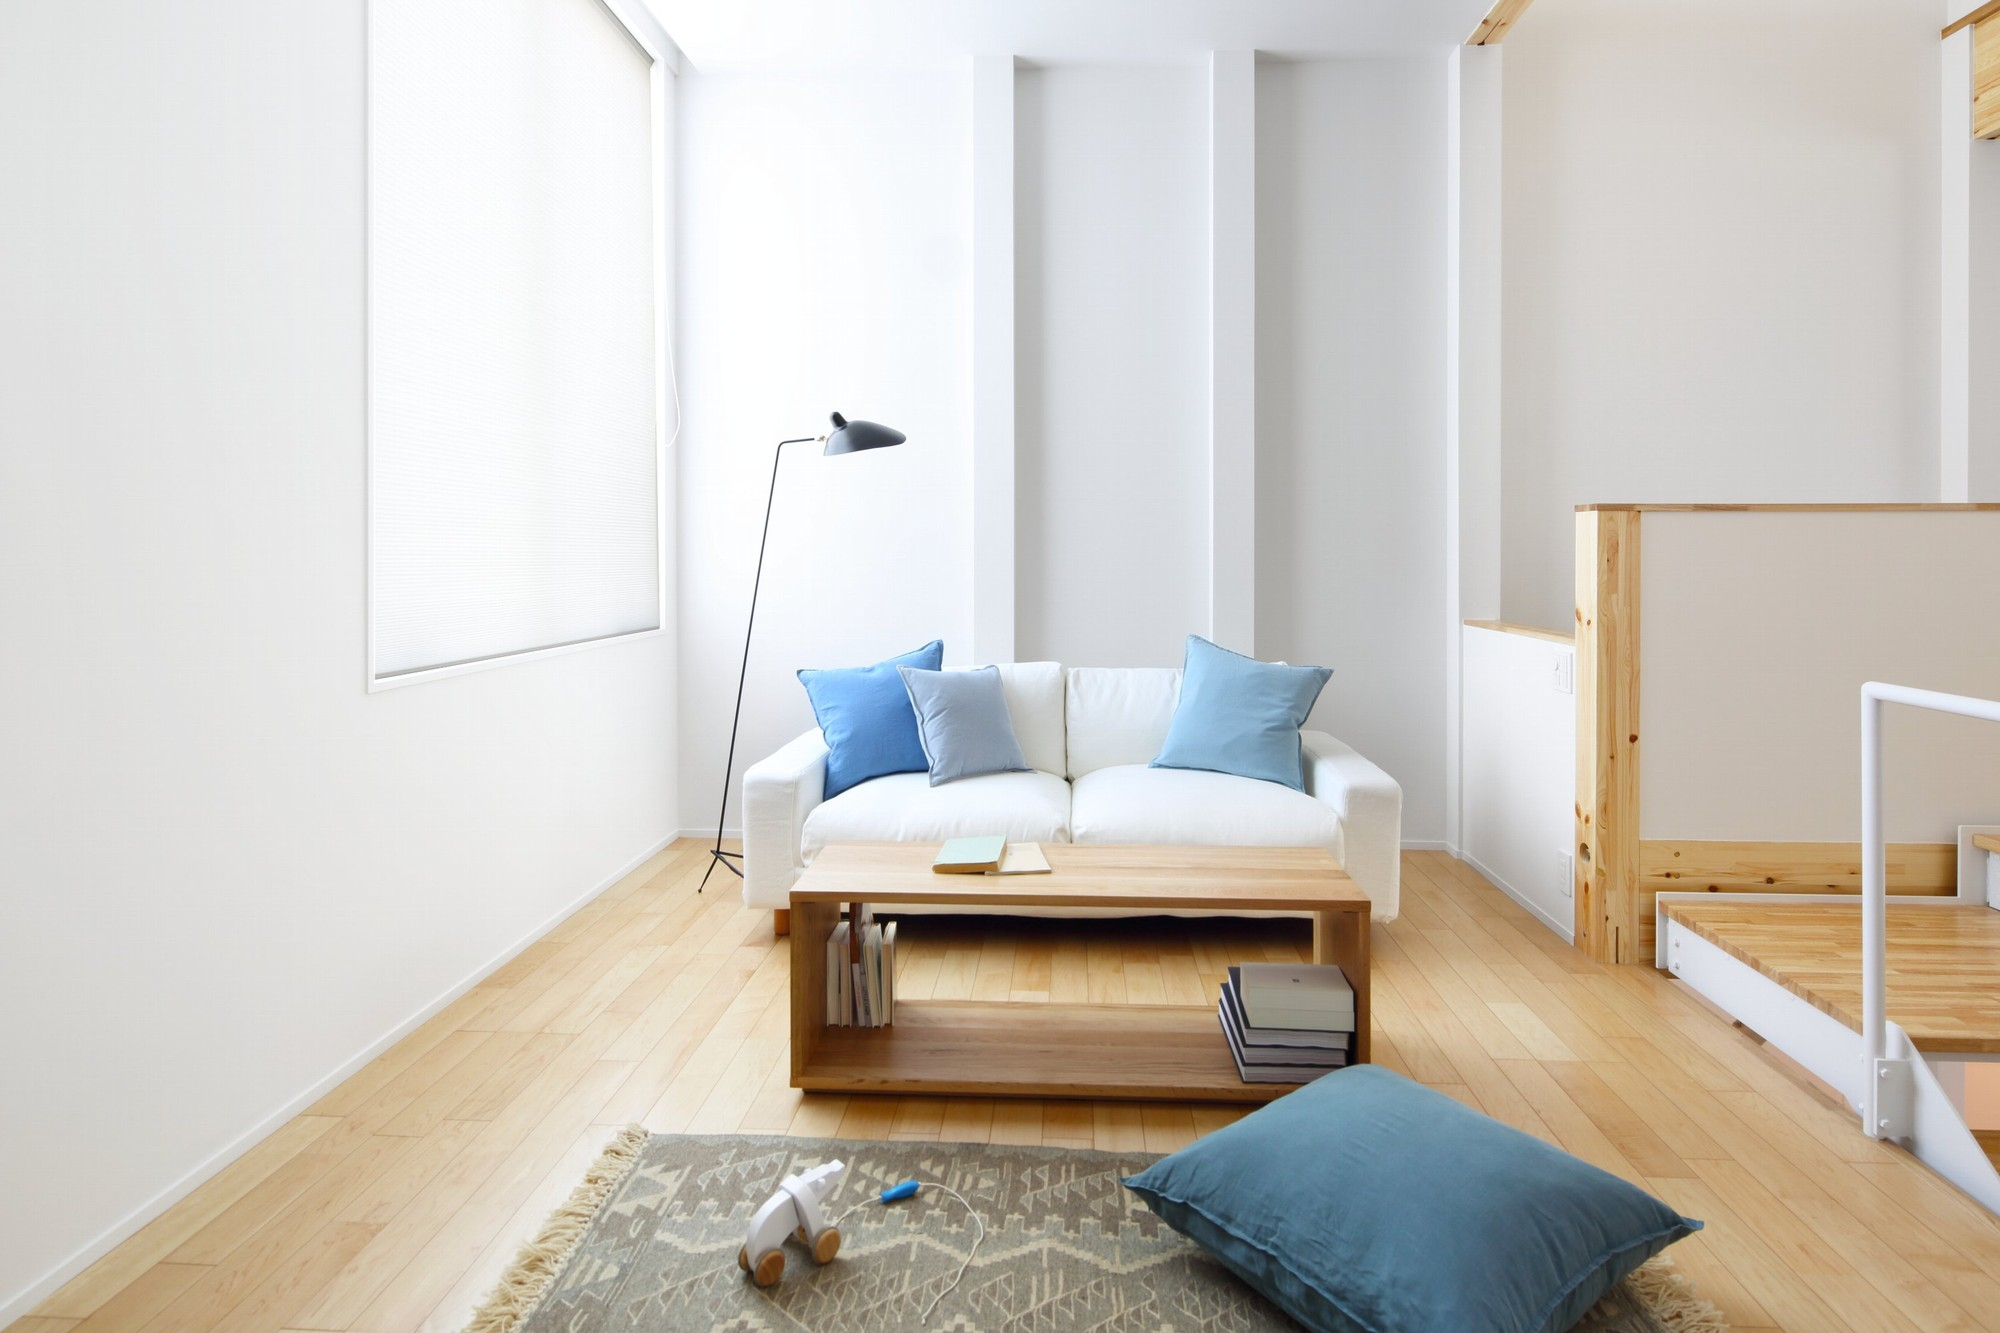 gallery of design your own home with muji's prefab vertical house - 4